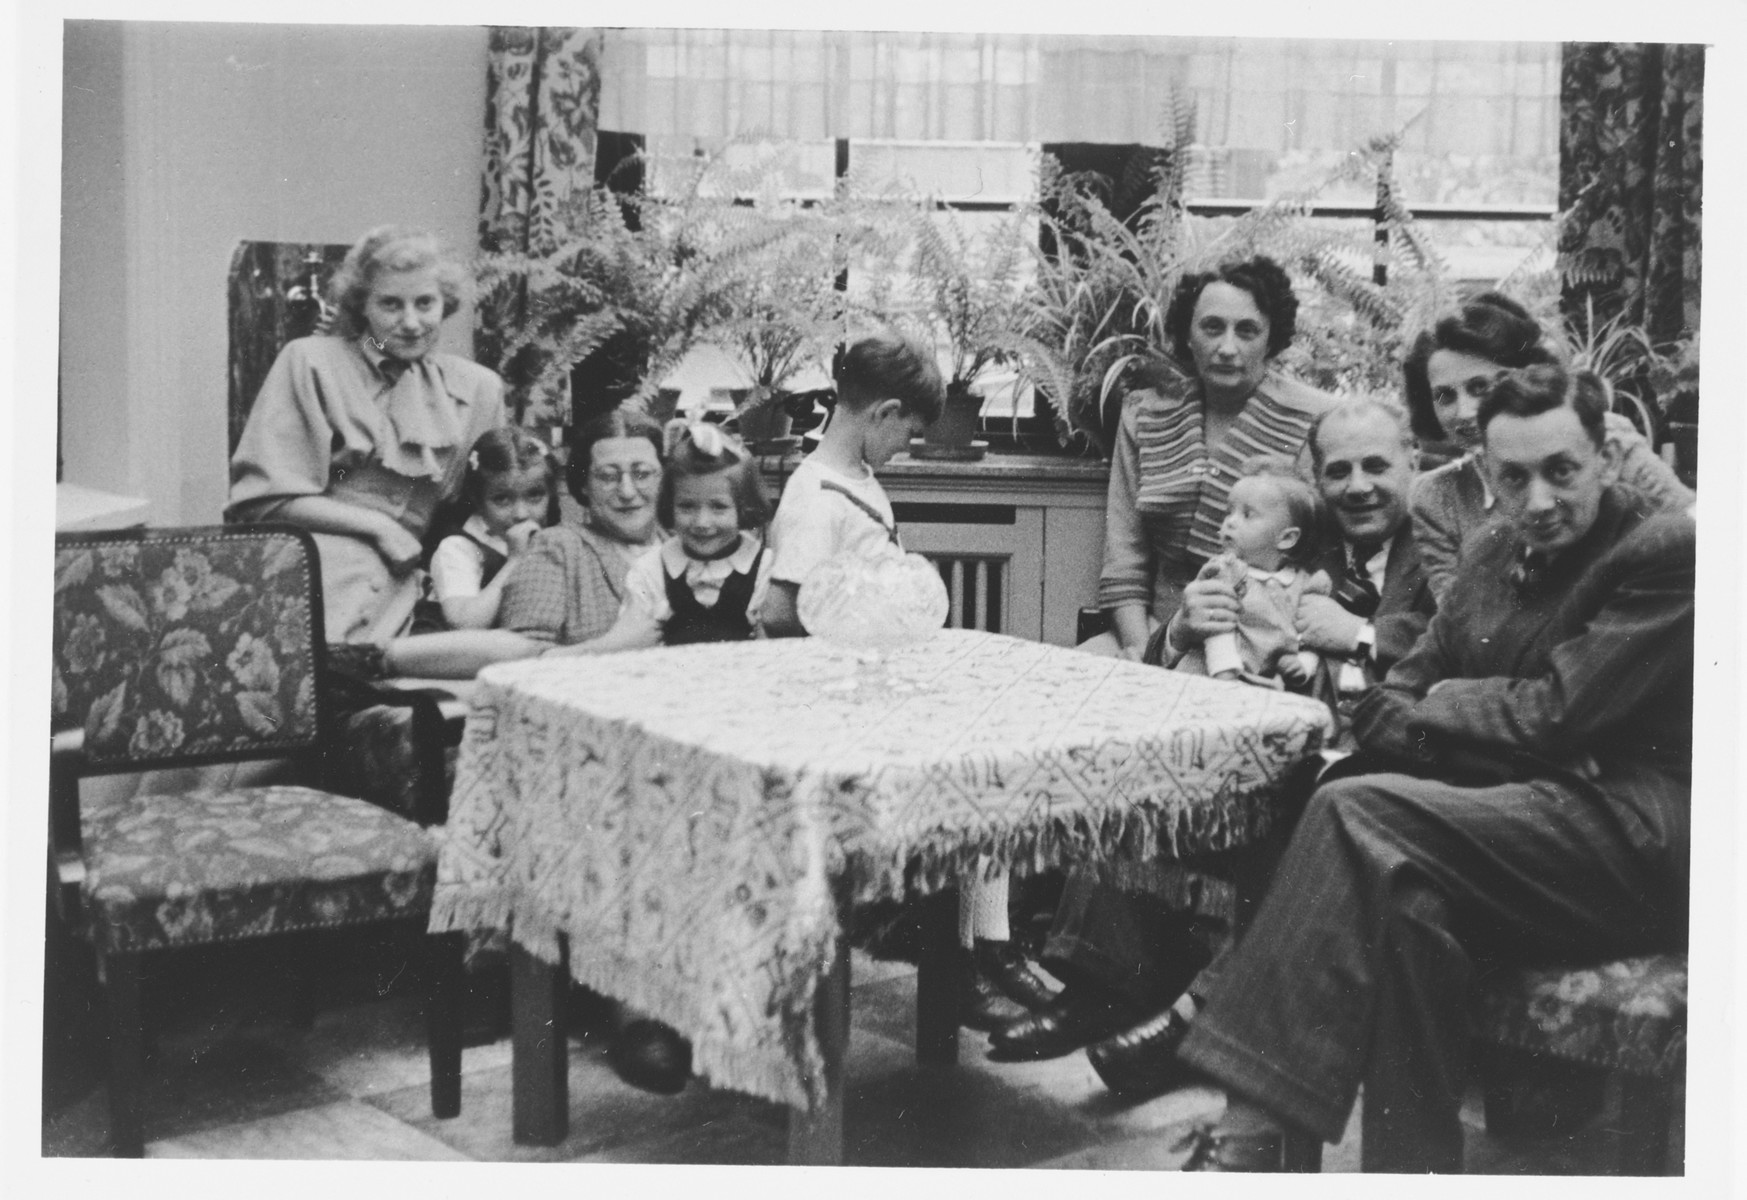 The Wollheim and Fabian families sit together in the living room of the home they shared following the imposition of the Berlin blockade.